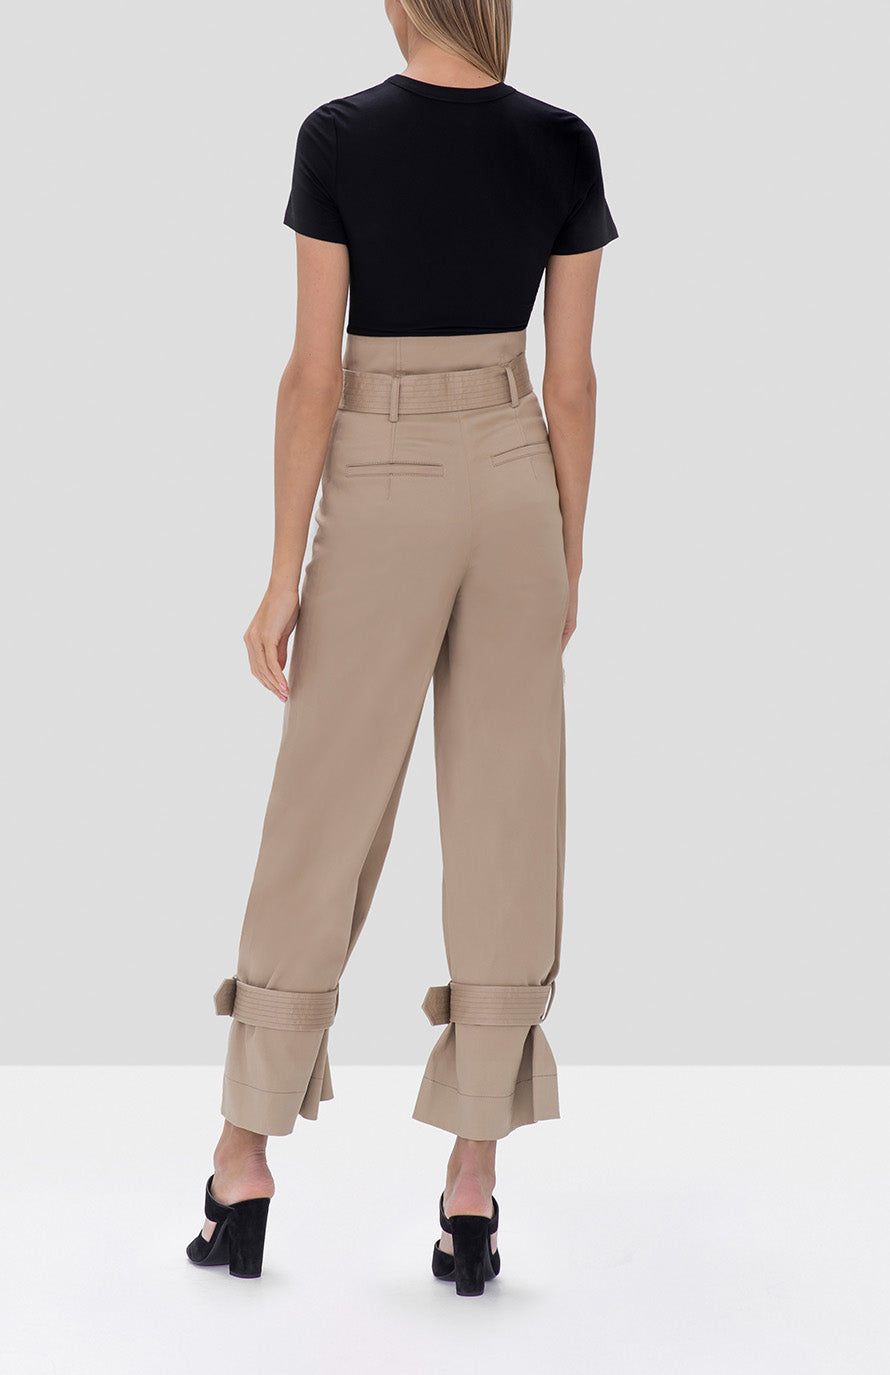 Alexis Soli Top in Black and Vicente Pant in Tan from the Fall Winter 2019 Ready To Wear Collection - Rear View